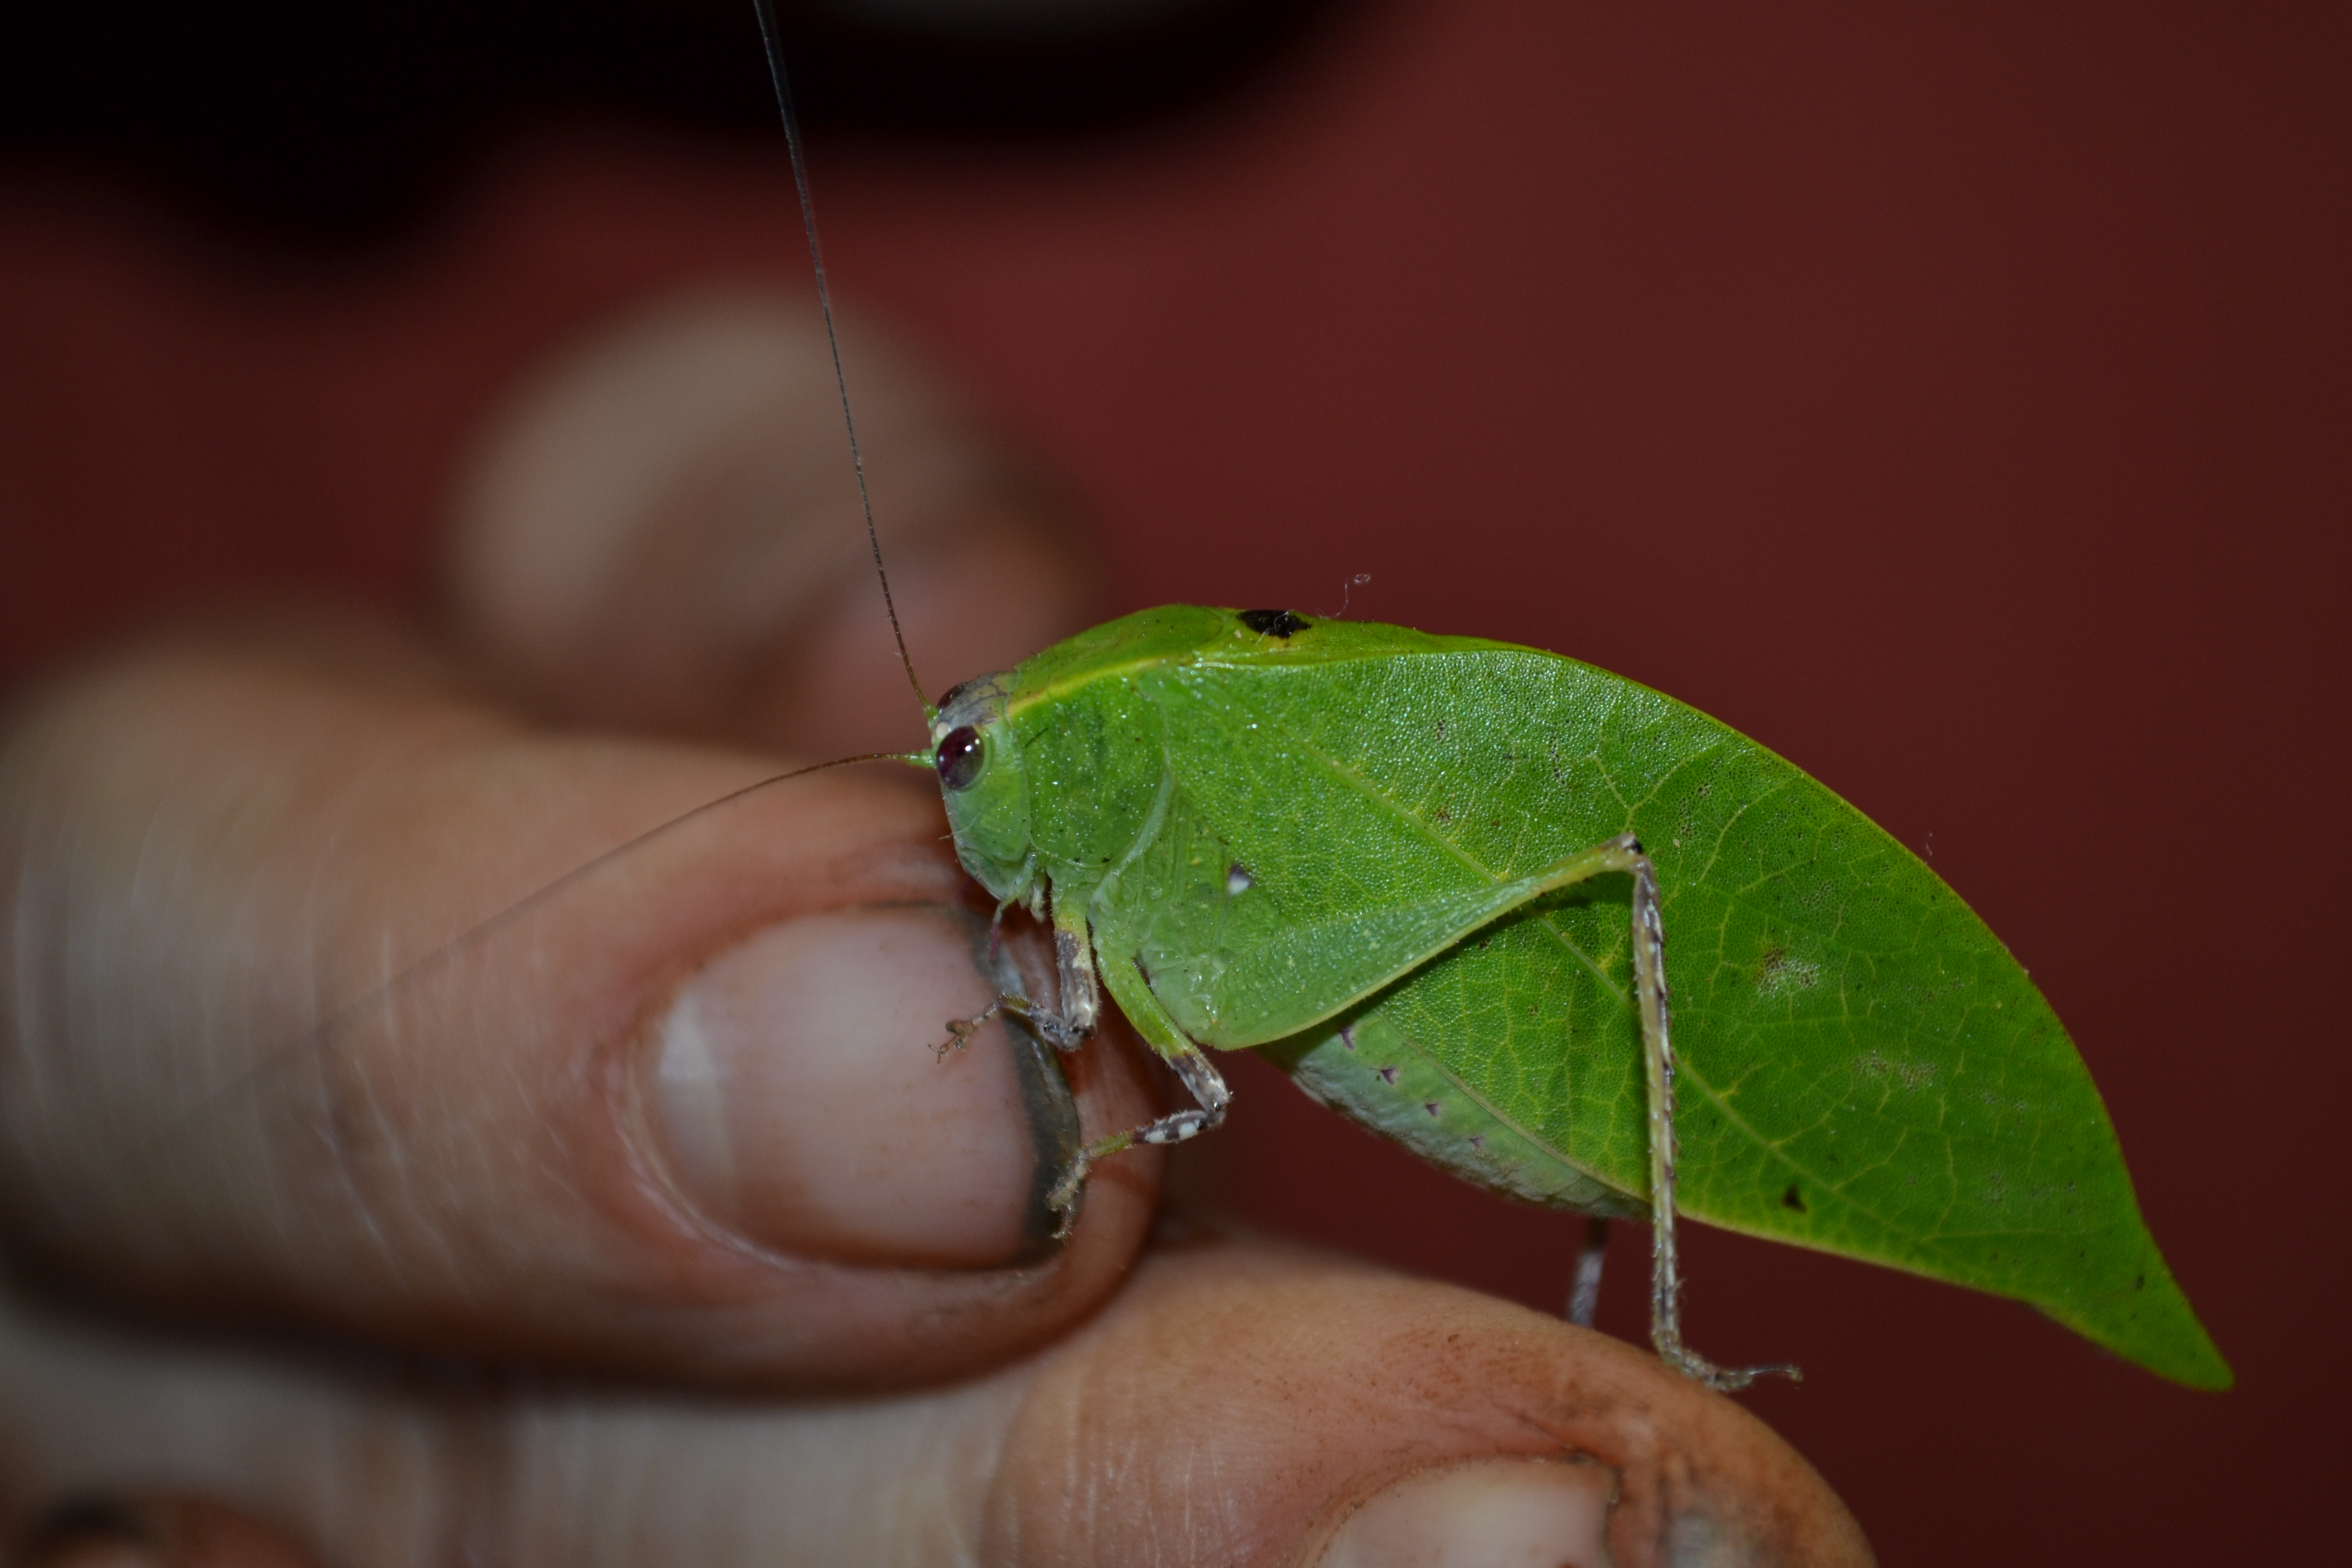 A very cool little bug we found fluttering on the dinner table one night.